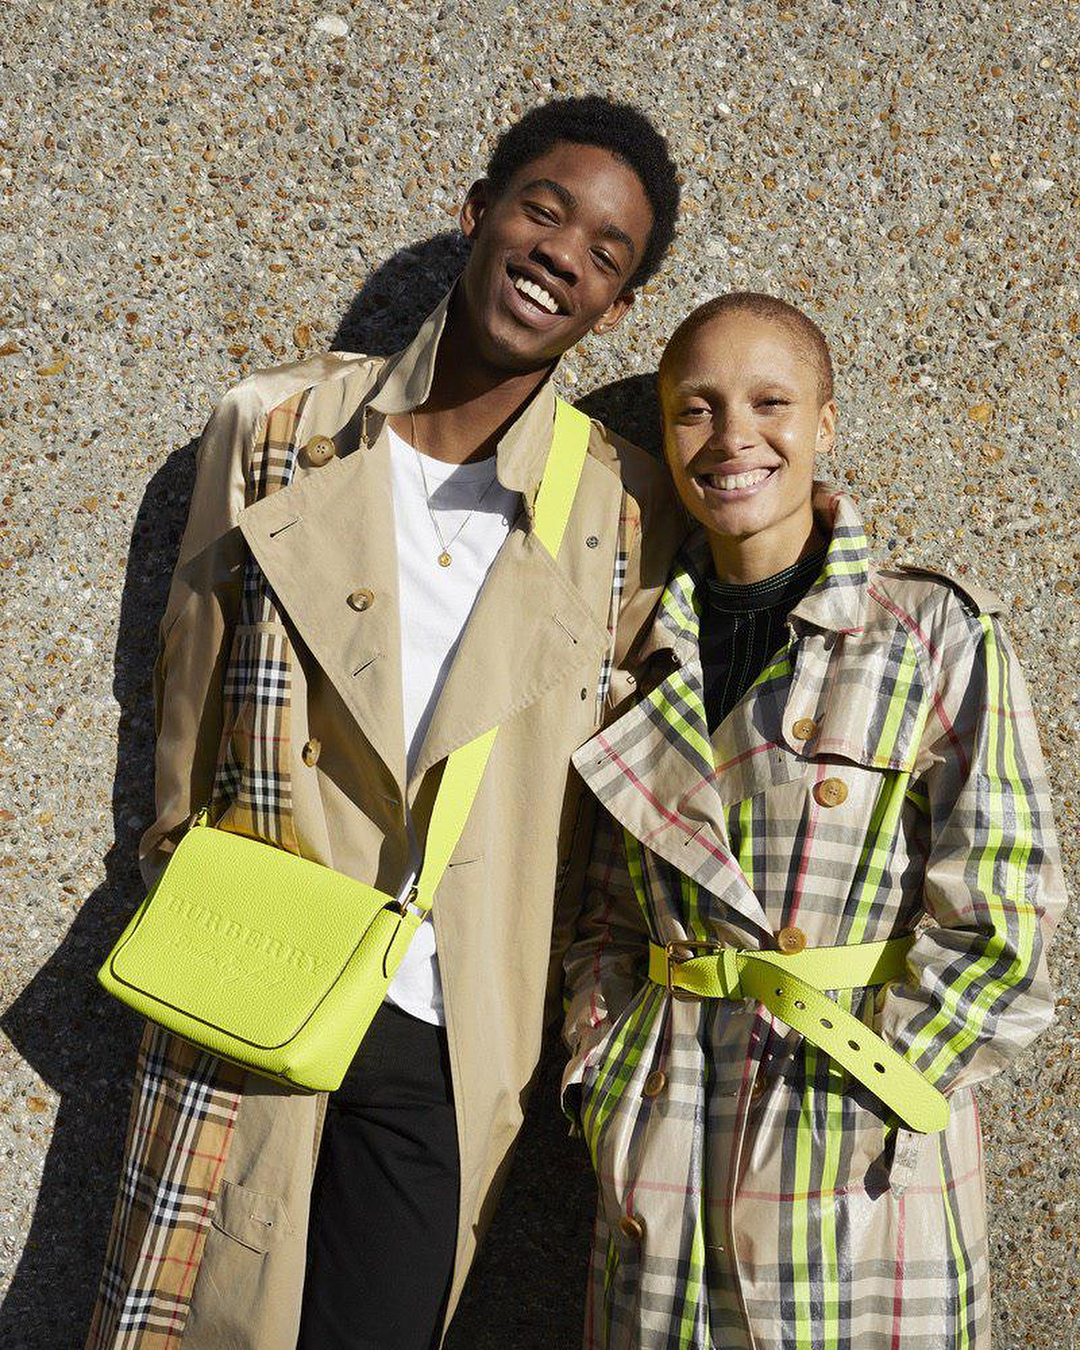 Check Out Burberry's New Collection for 2018